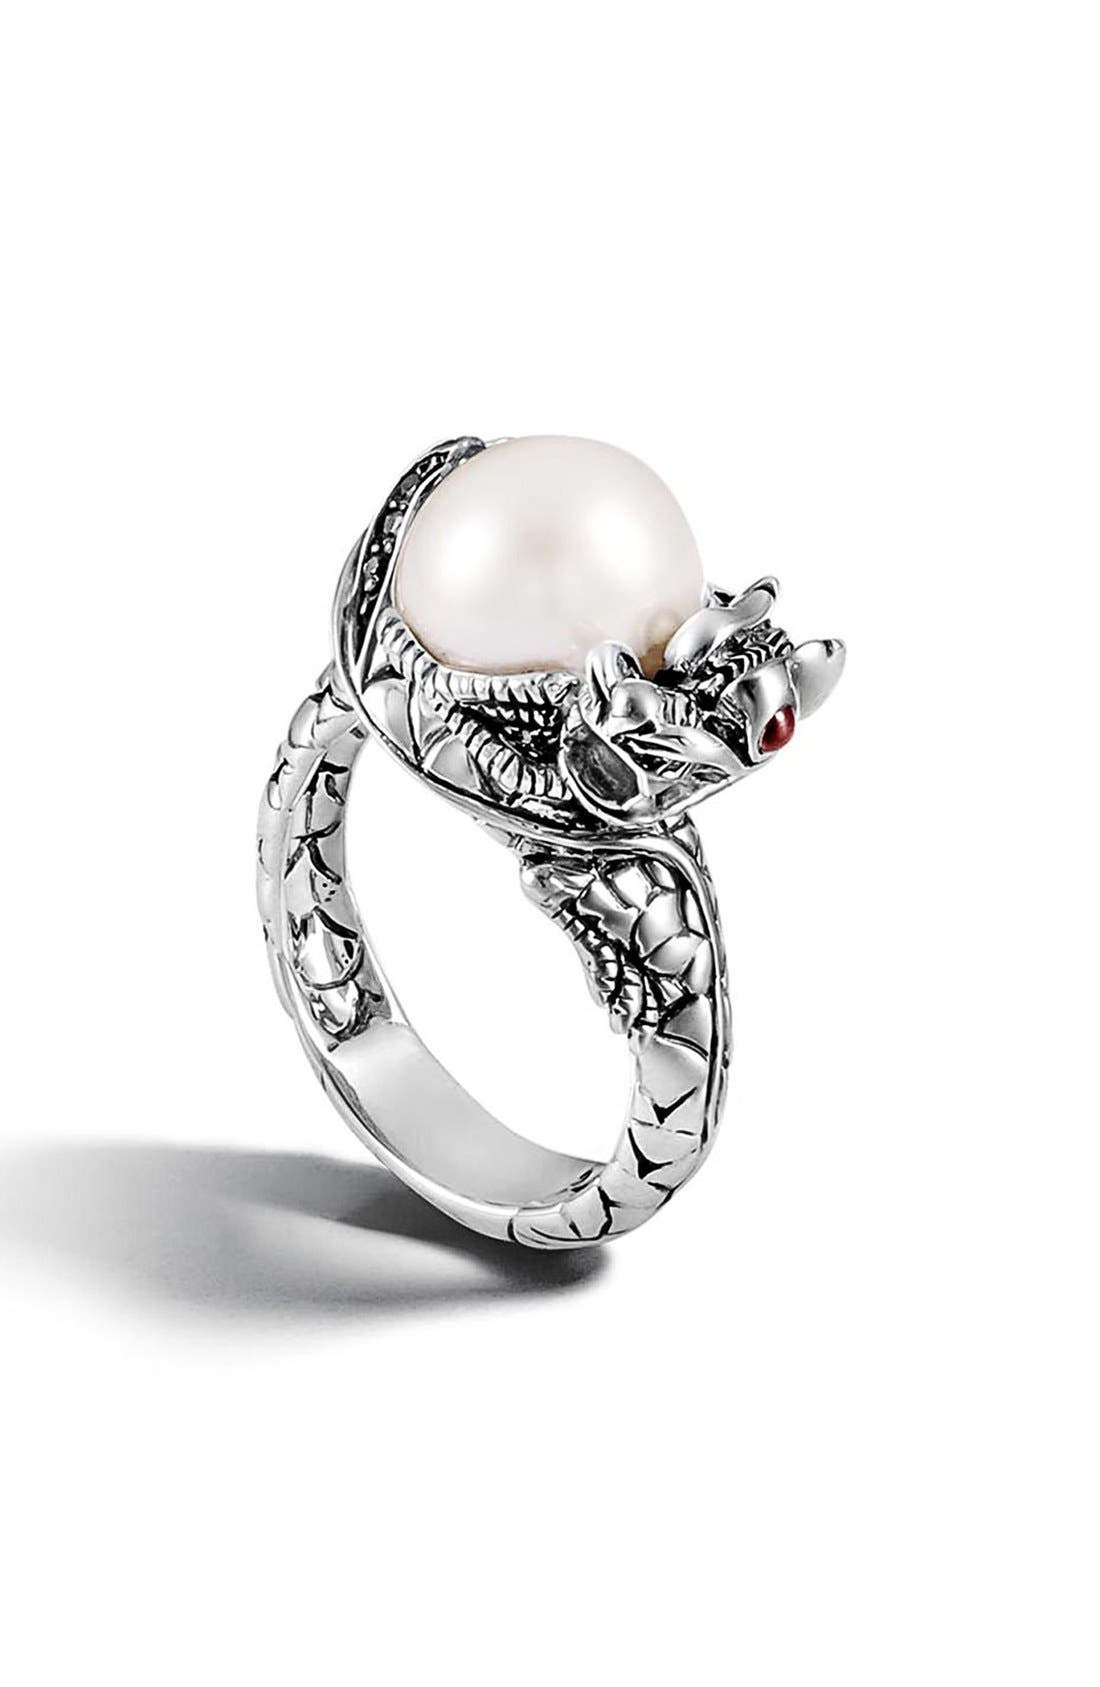 'Naga - Lava' Dragon & Pearl Ring,                             Main thumbnail 1, color,                             SILVER